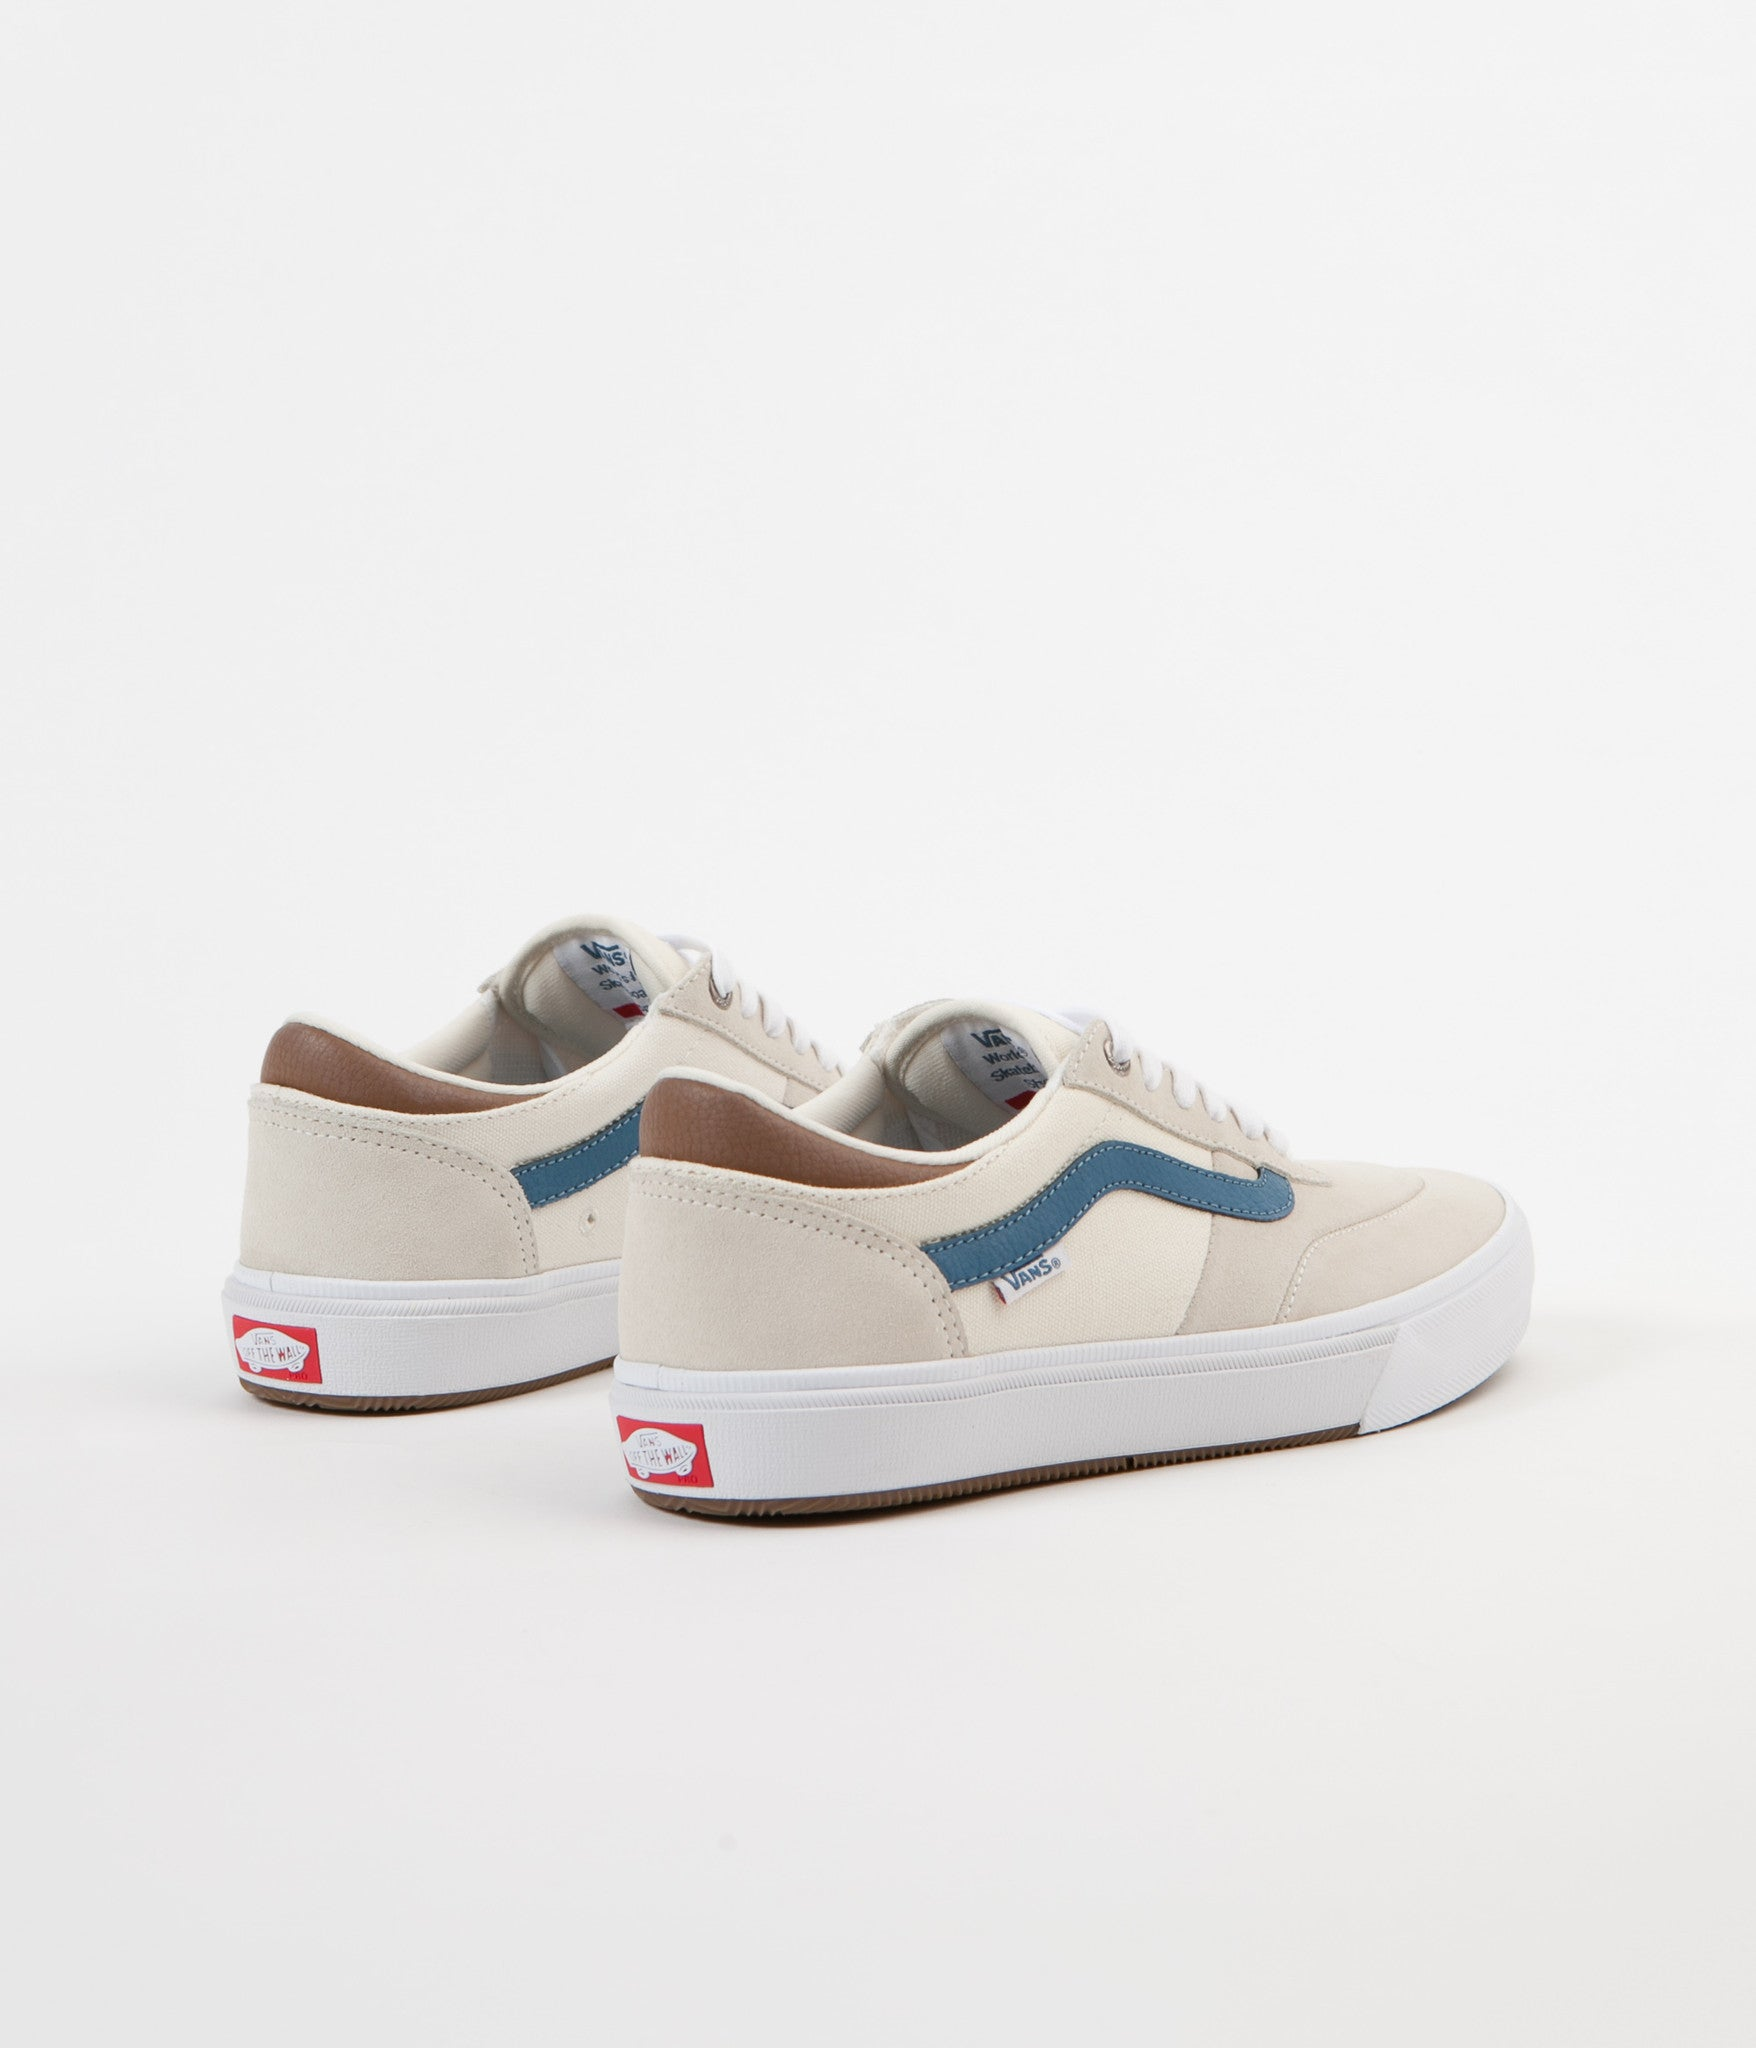 vans gilbert crockett 2 white